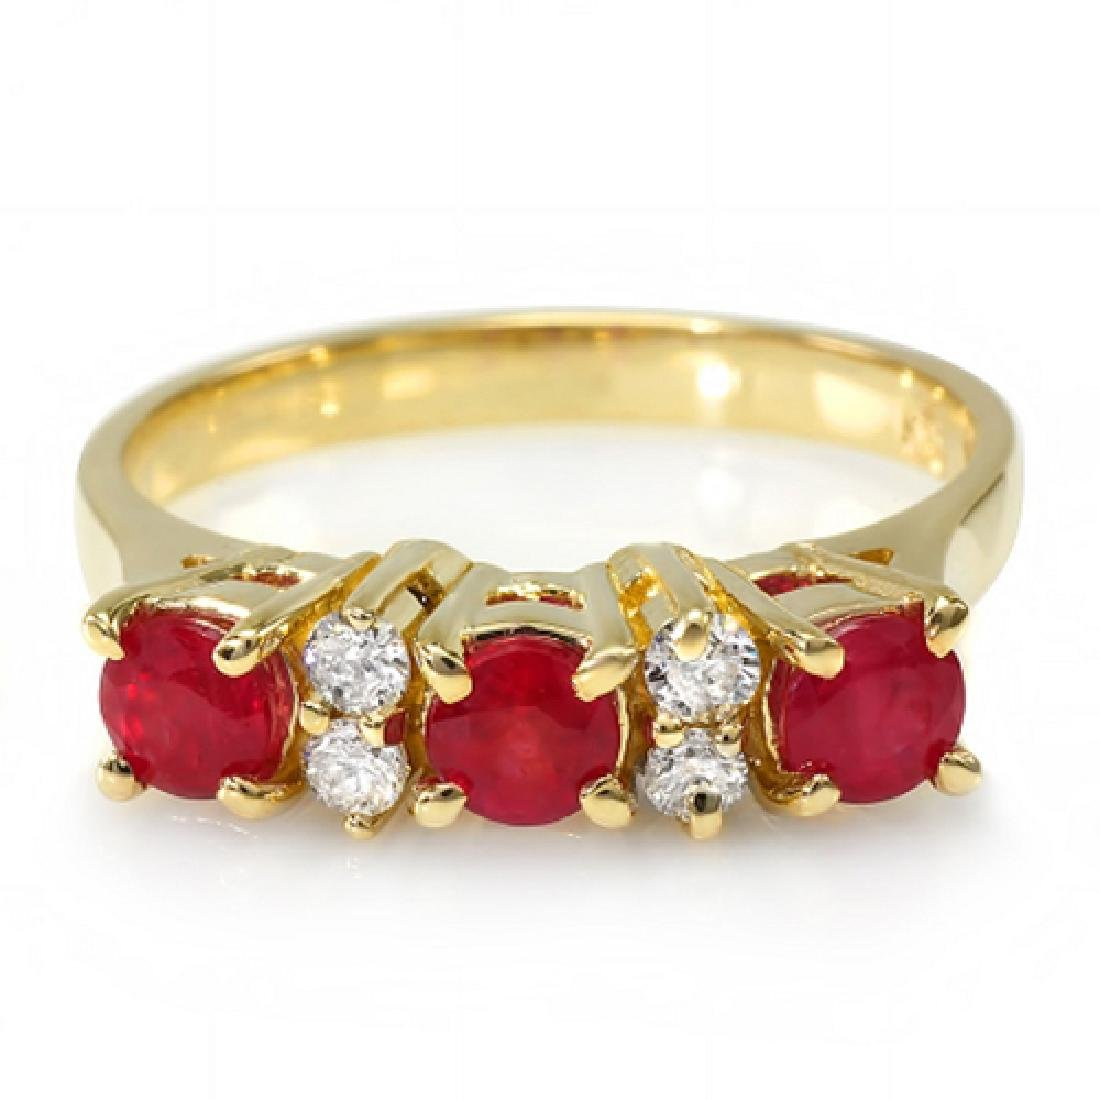 1.38 Carat Natural Ruby 18K Solid Yellow Gold Diamond